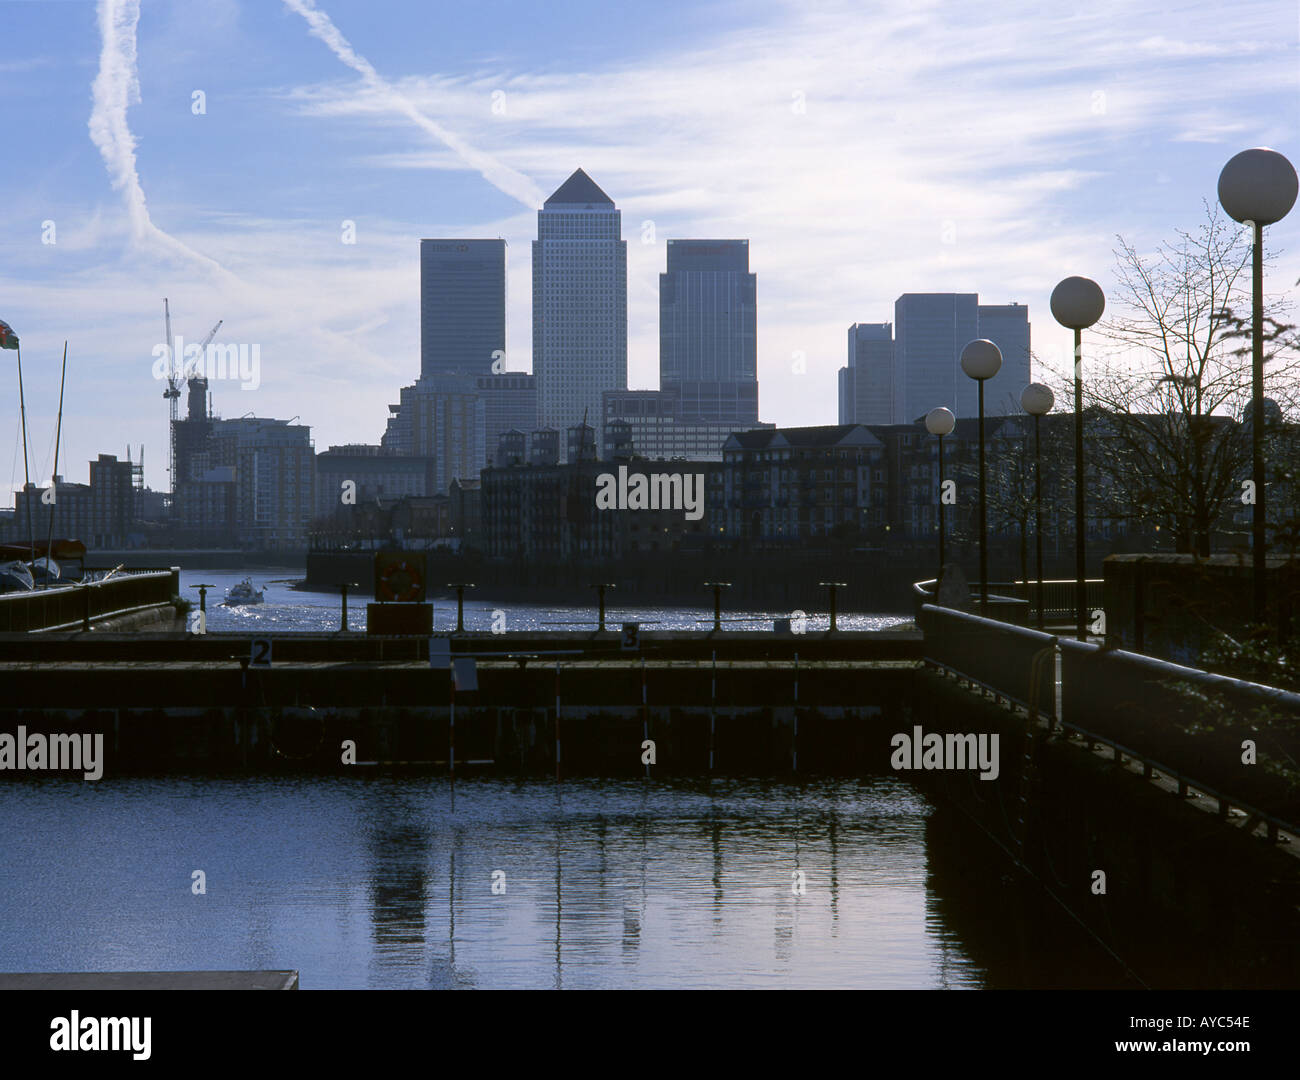 Londons Isle of Dogs viewed from Shadwell Basin - Stock Image